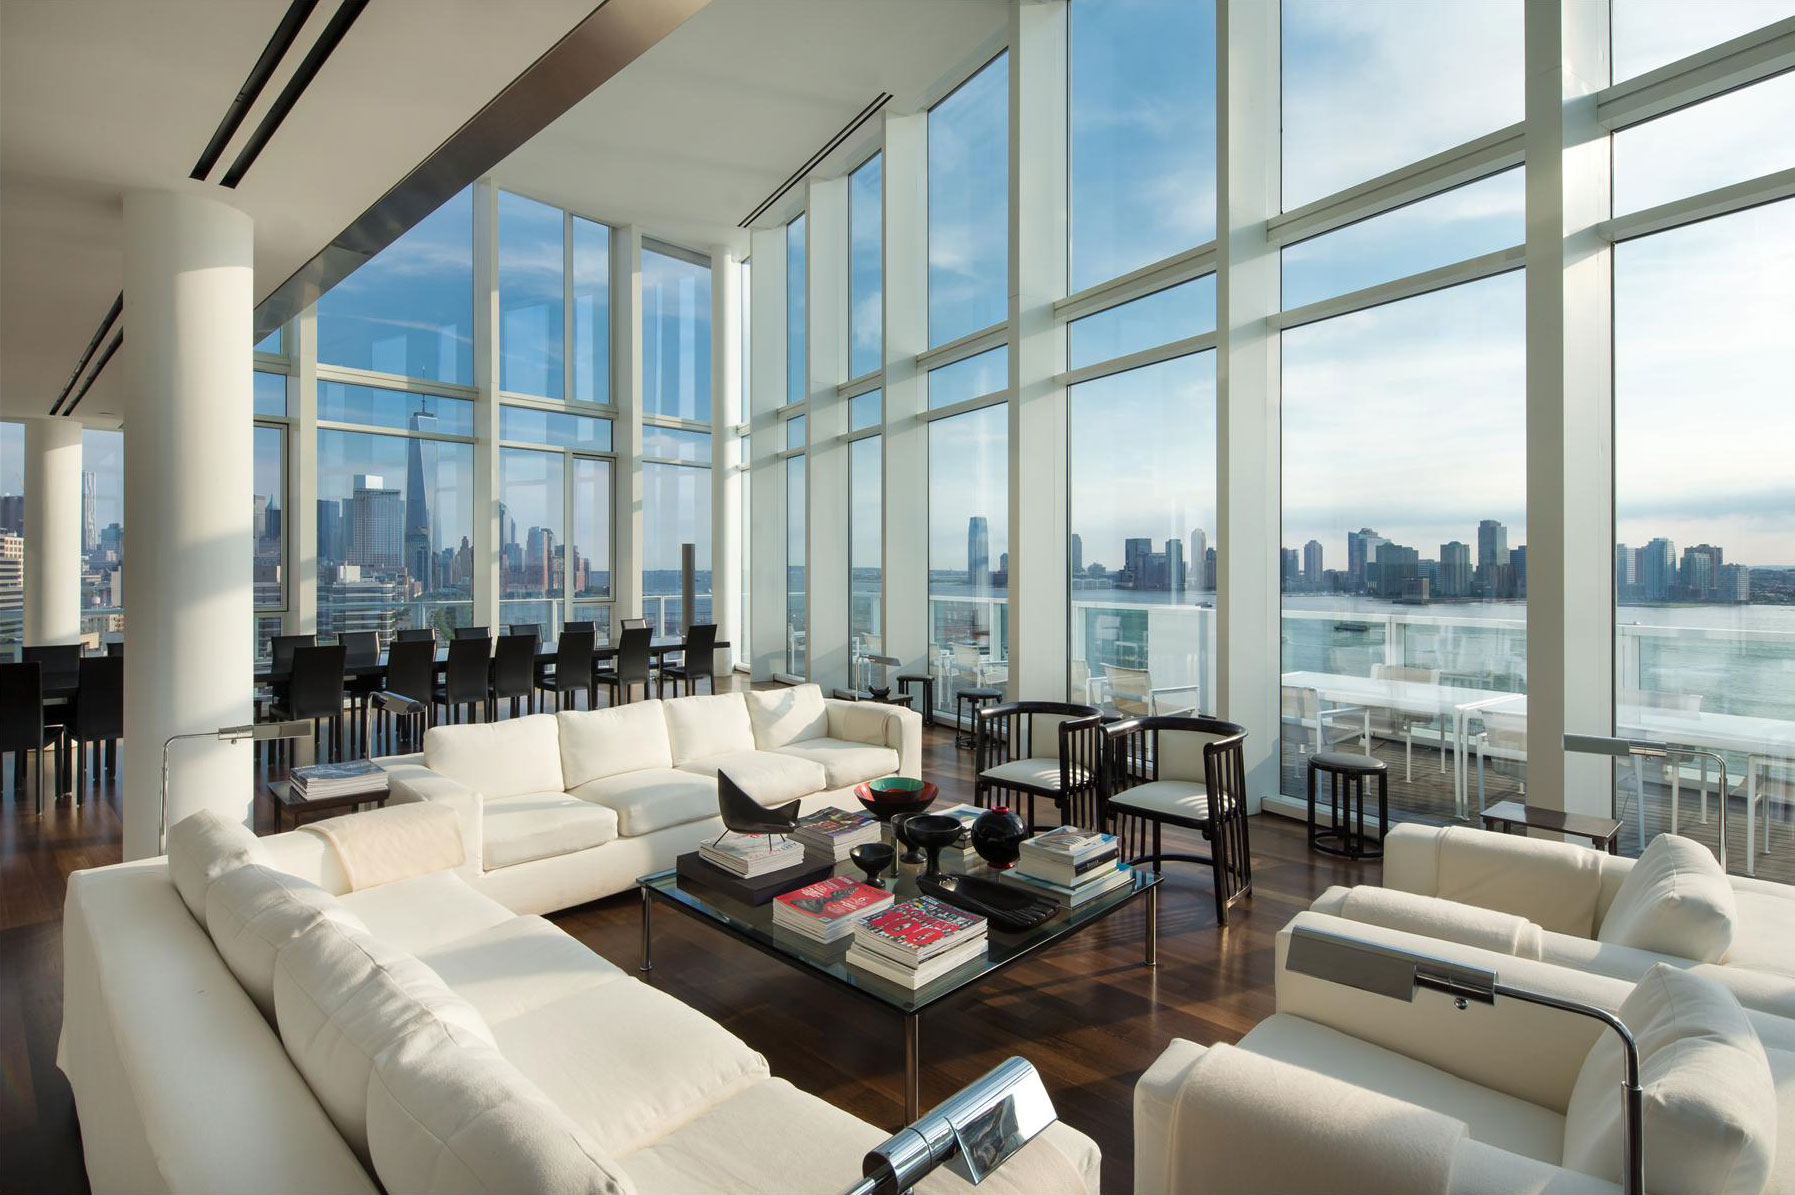 Luxurious apartment overlooking the hudson river in manhattan for Sofa interiors studio city